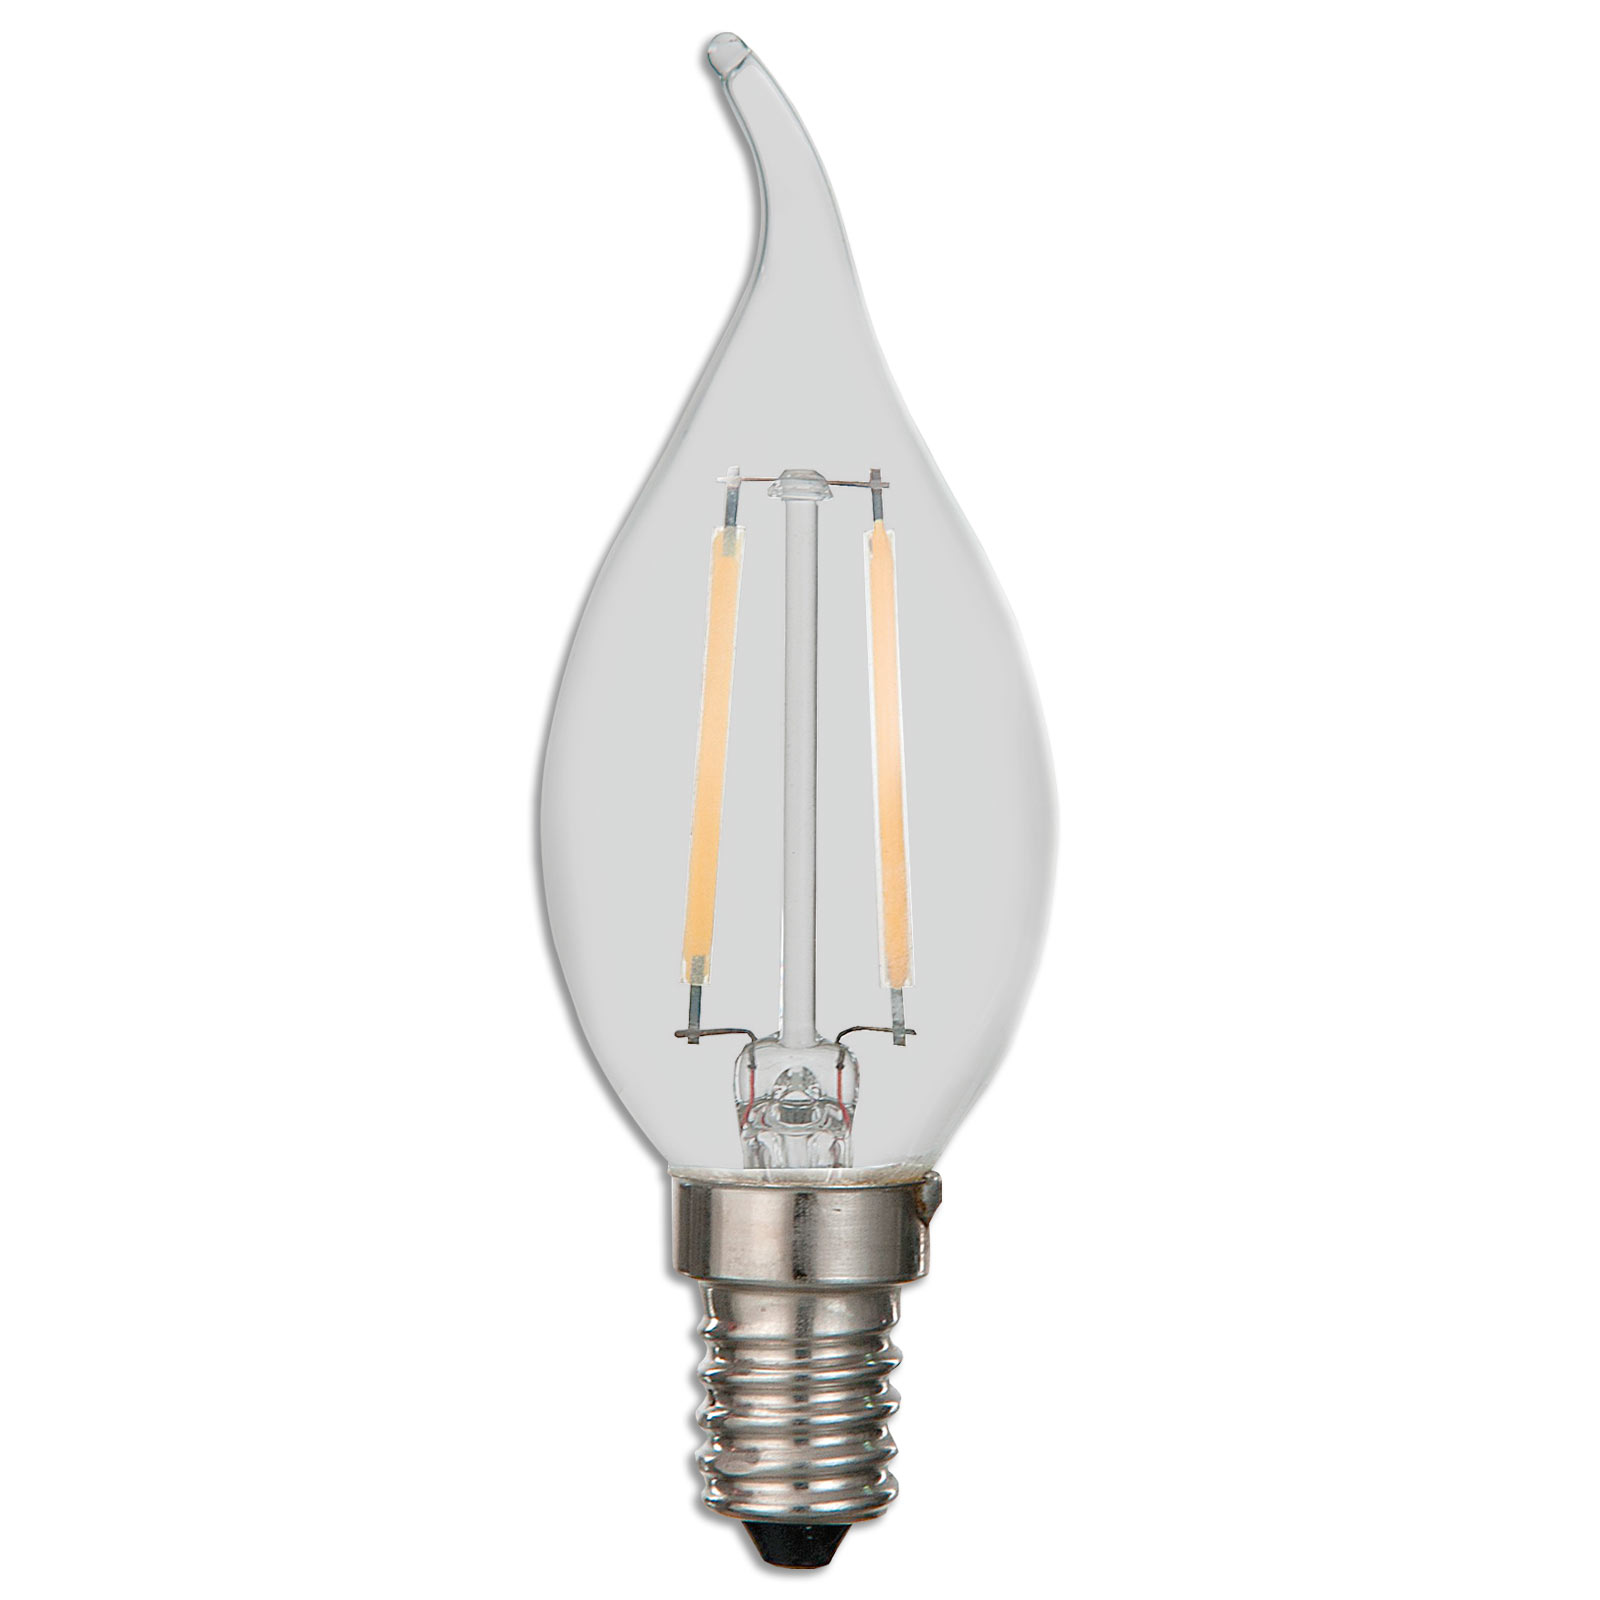 LED-Windstoßkerze Filament - E14 - 2,6 Watt - warmweiß